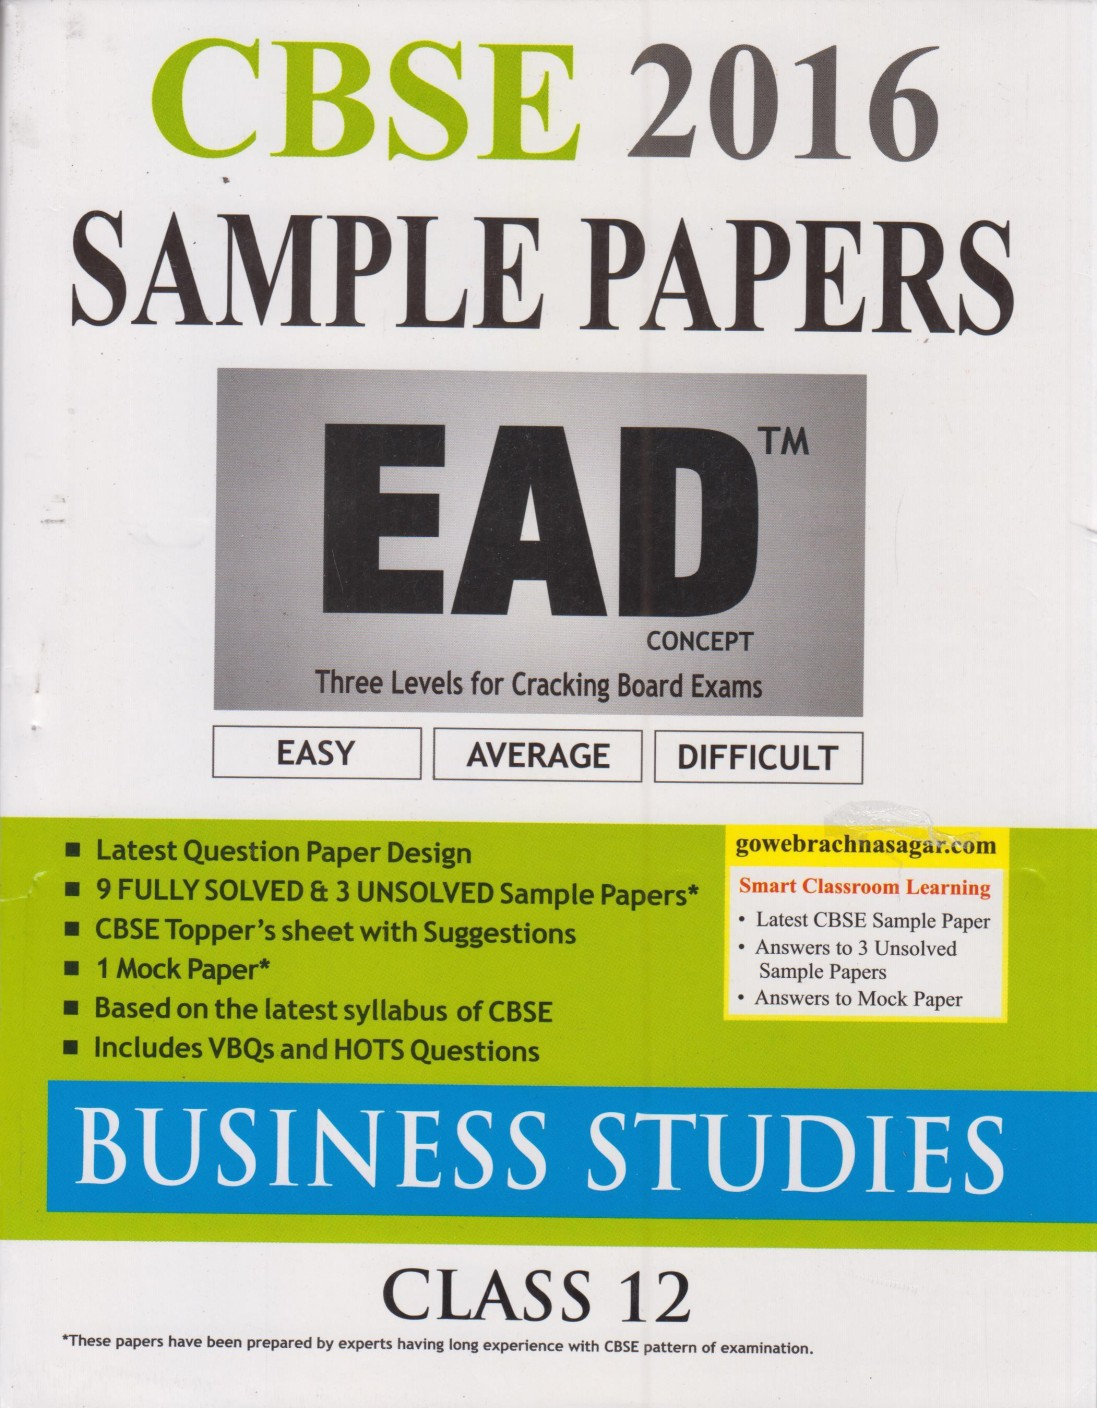 business sample paper Cbse class 11-commerce business studies sample papers, class 11-commerce business studies question papers, class 11-commerce business studies model papers,class 11-commerce business studies test papers, class 11-commerce business studies guess papers and more.